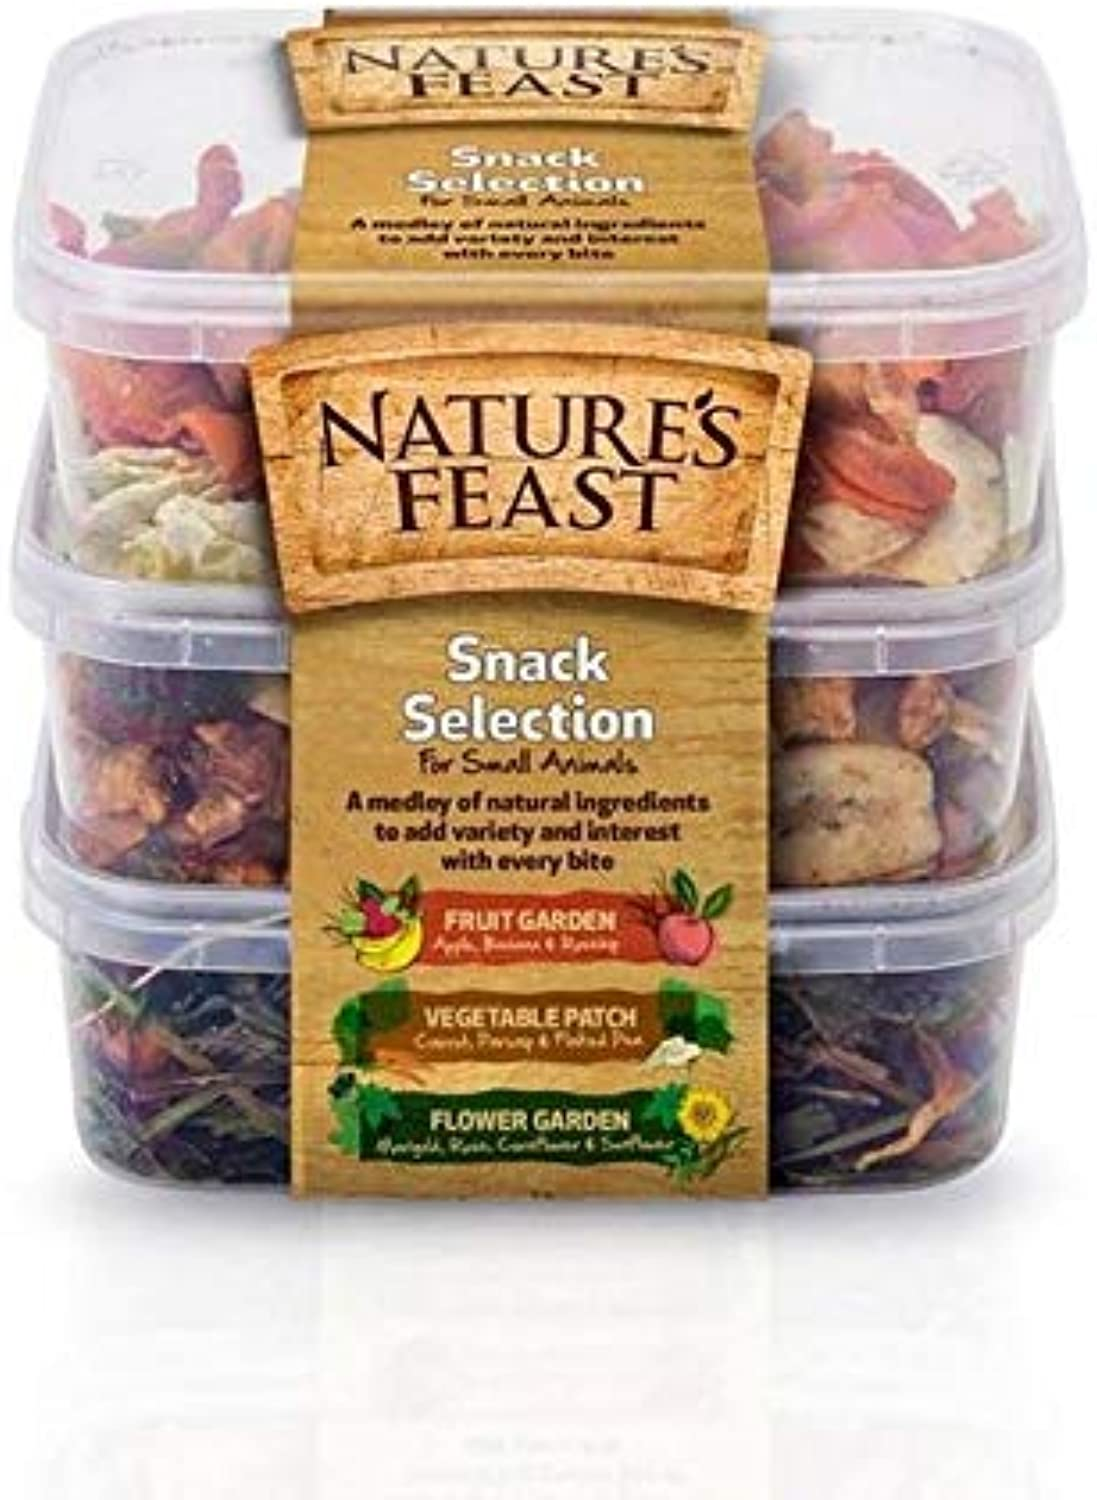 4X Natures Feast Snack Selection for Small Animals 175g